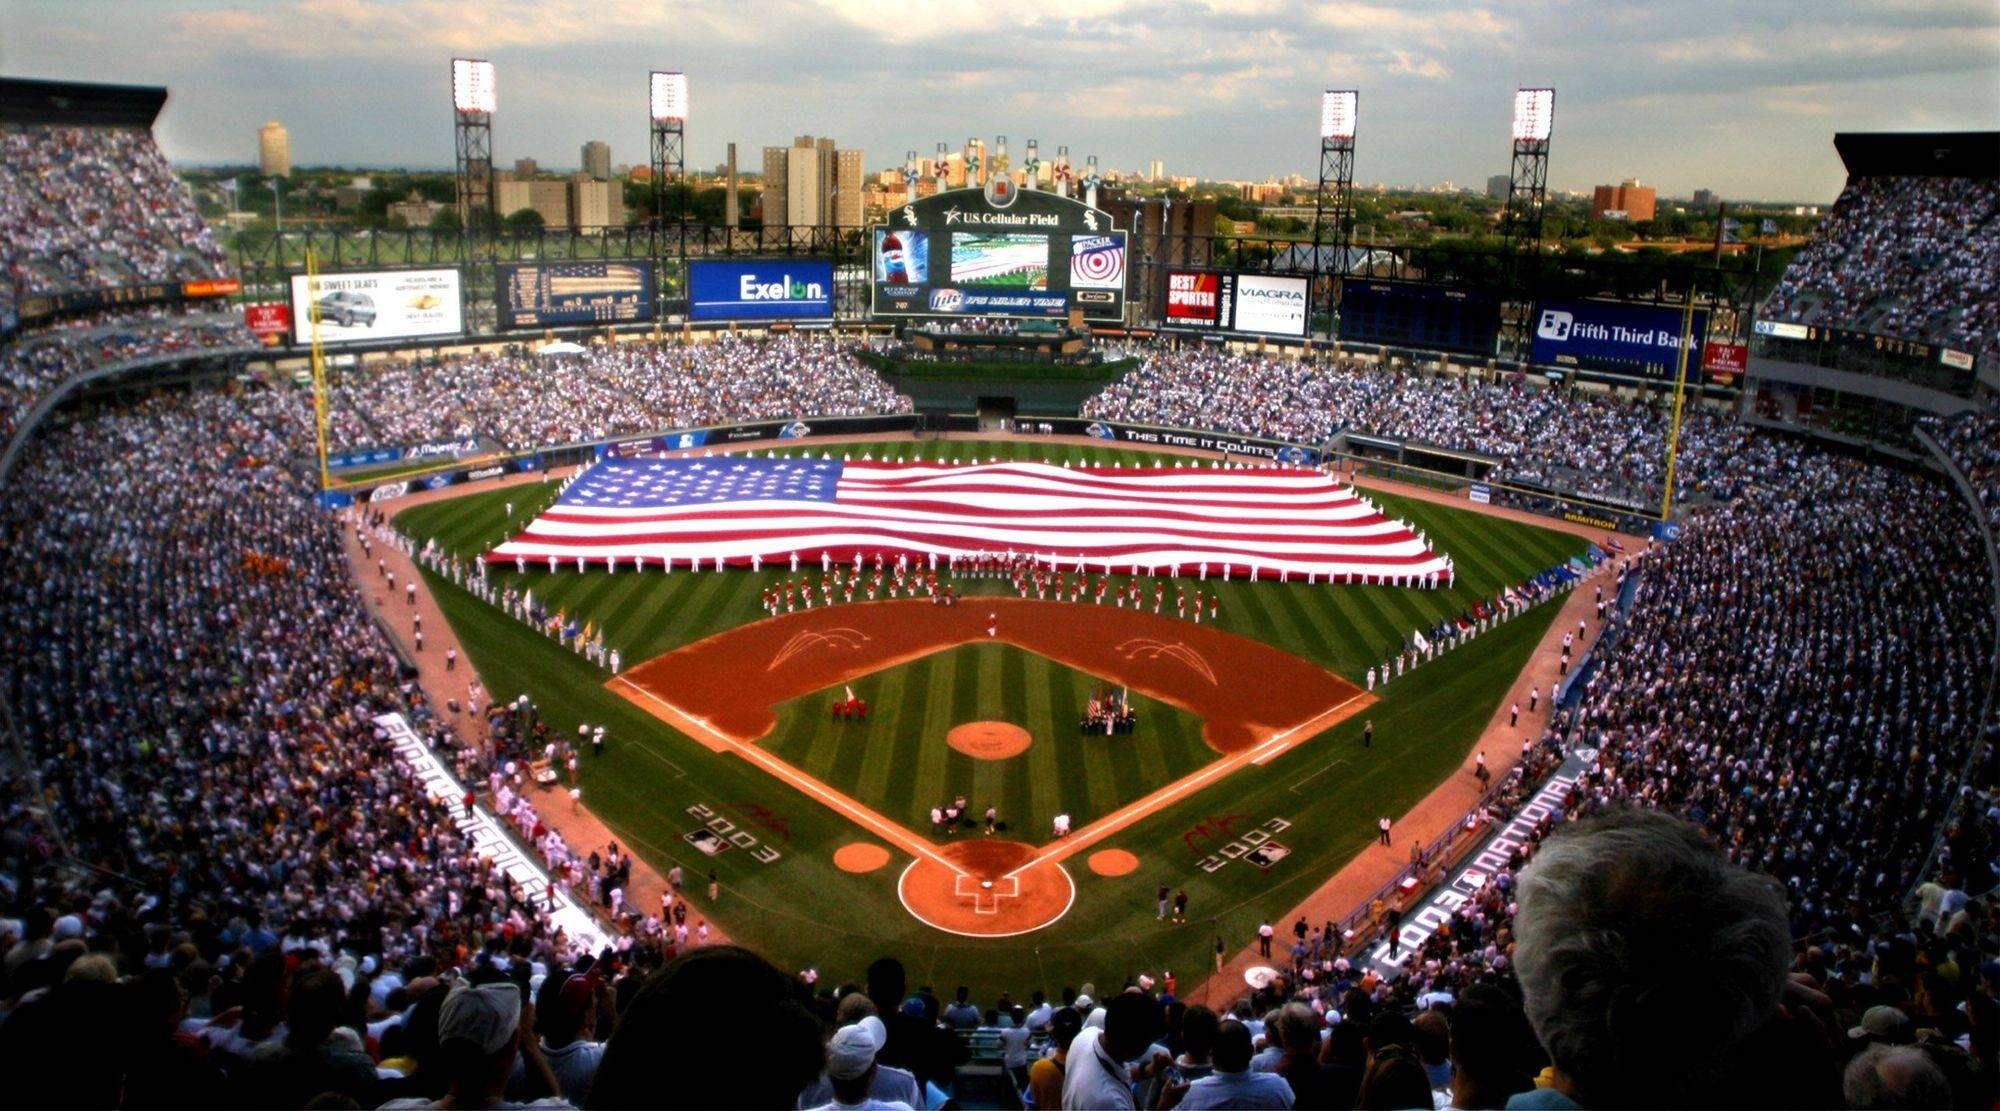 The size of the baseball field at U.S. Cellular Field, above, varies within a few feet on each side from the field at Wrigley. But that's where similarities end, according to baseball fans.